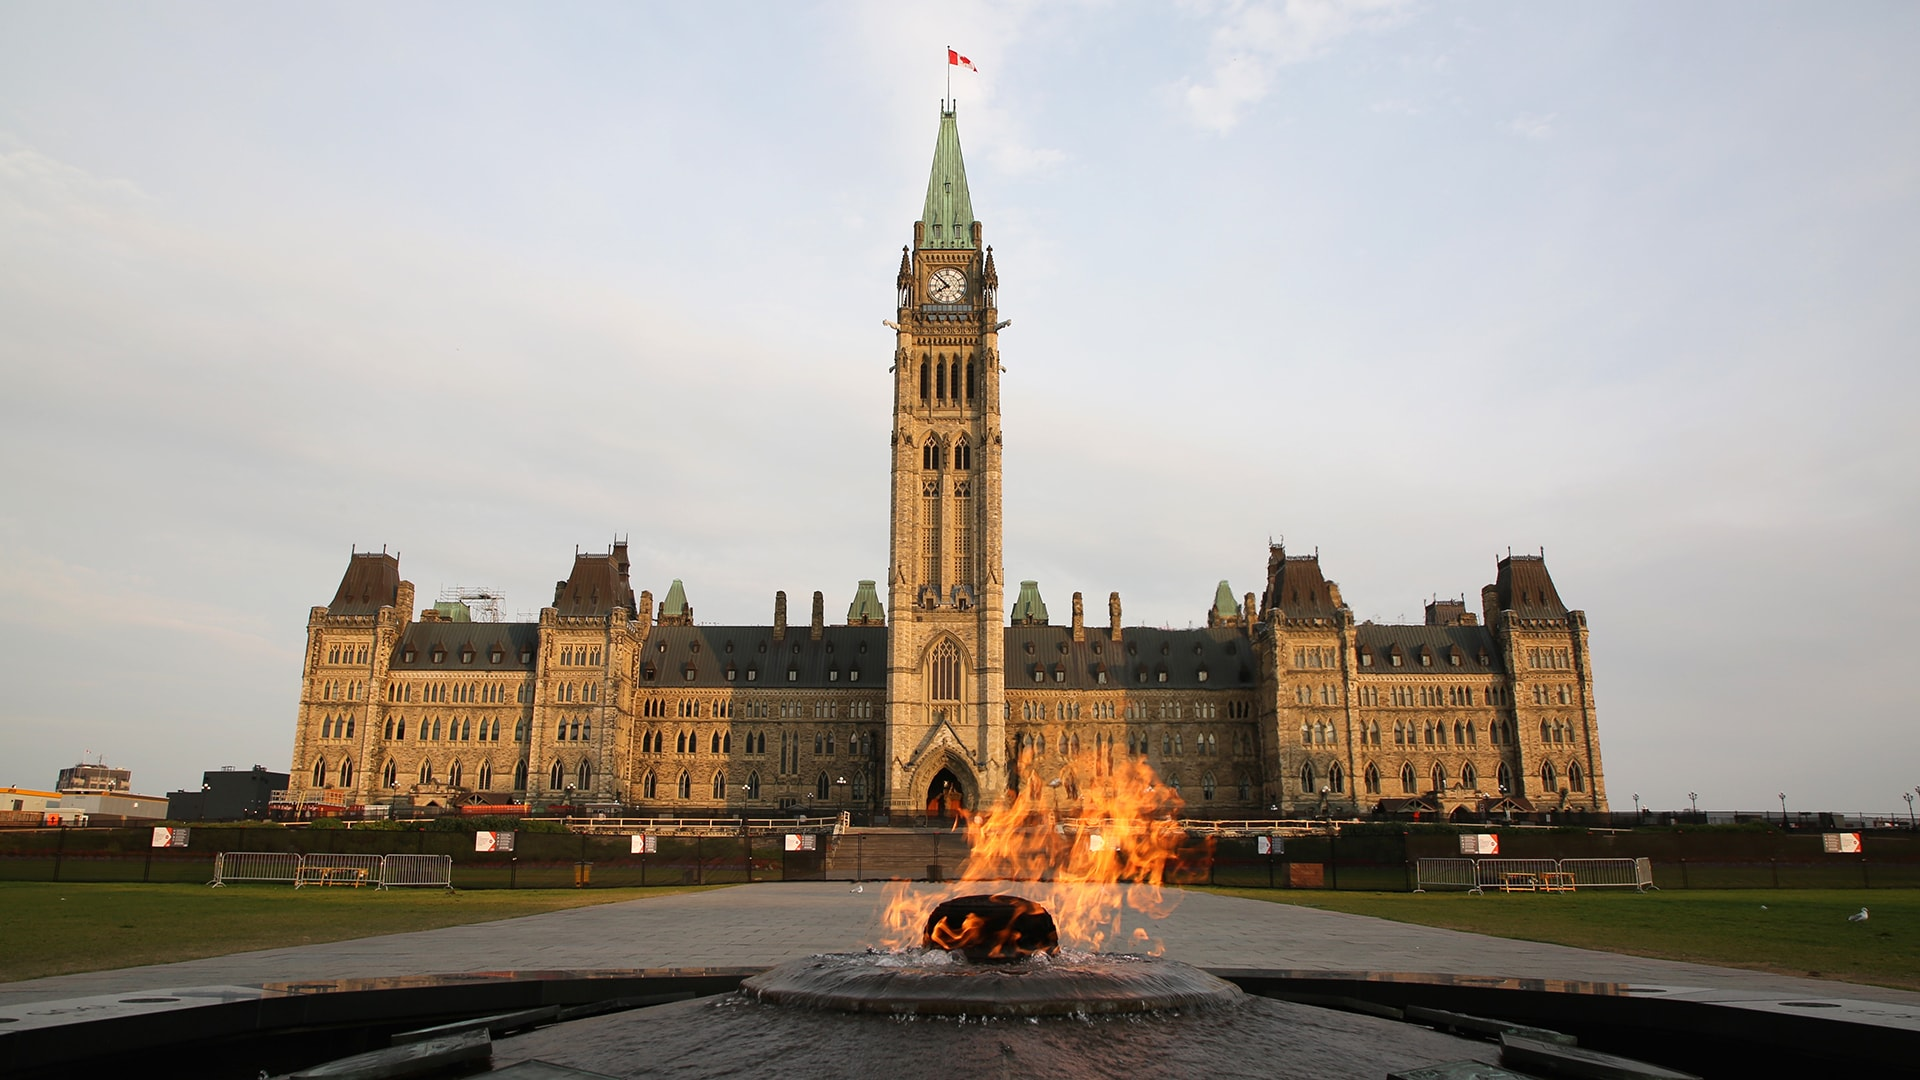 The Centennial Flame, which commemorates Canada's 100th anniversary as a Confederation, burns in front of the Centre Block building in Ottawa.